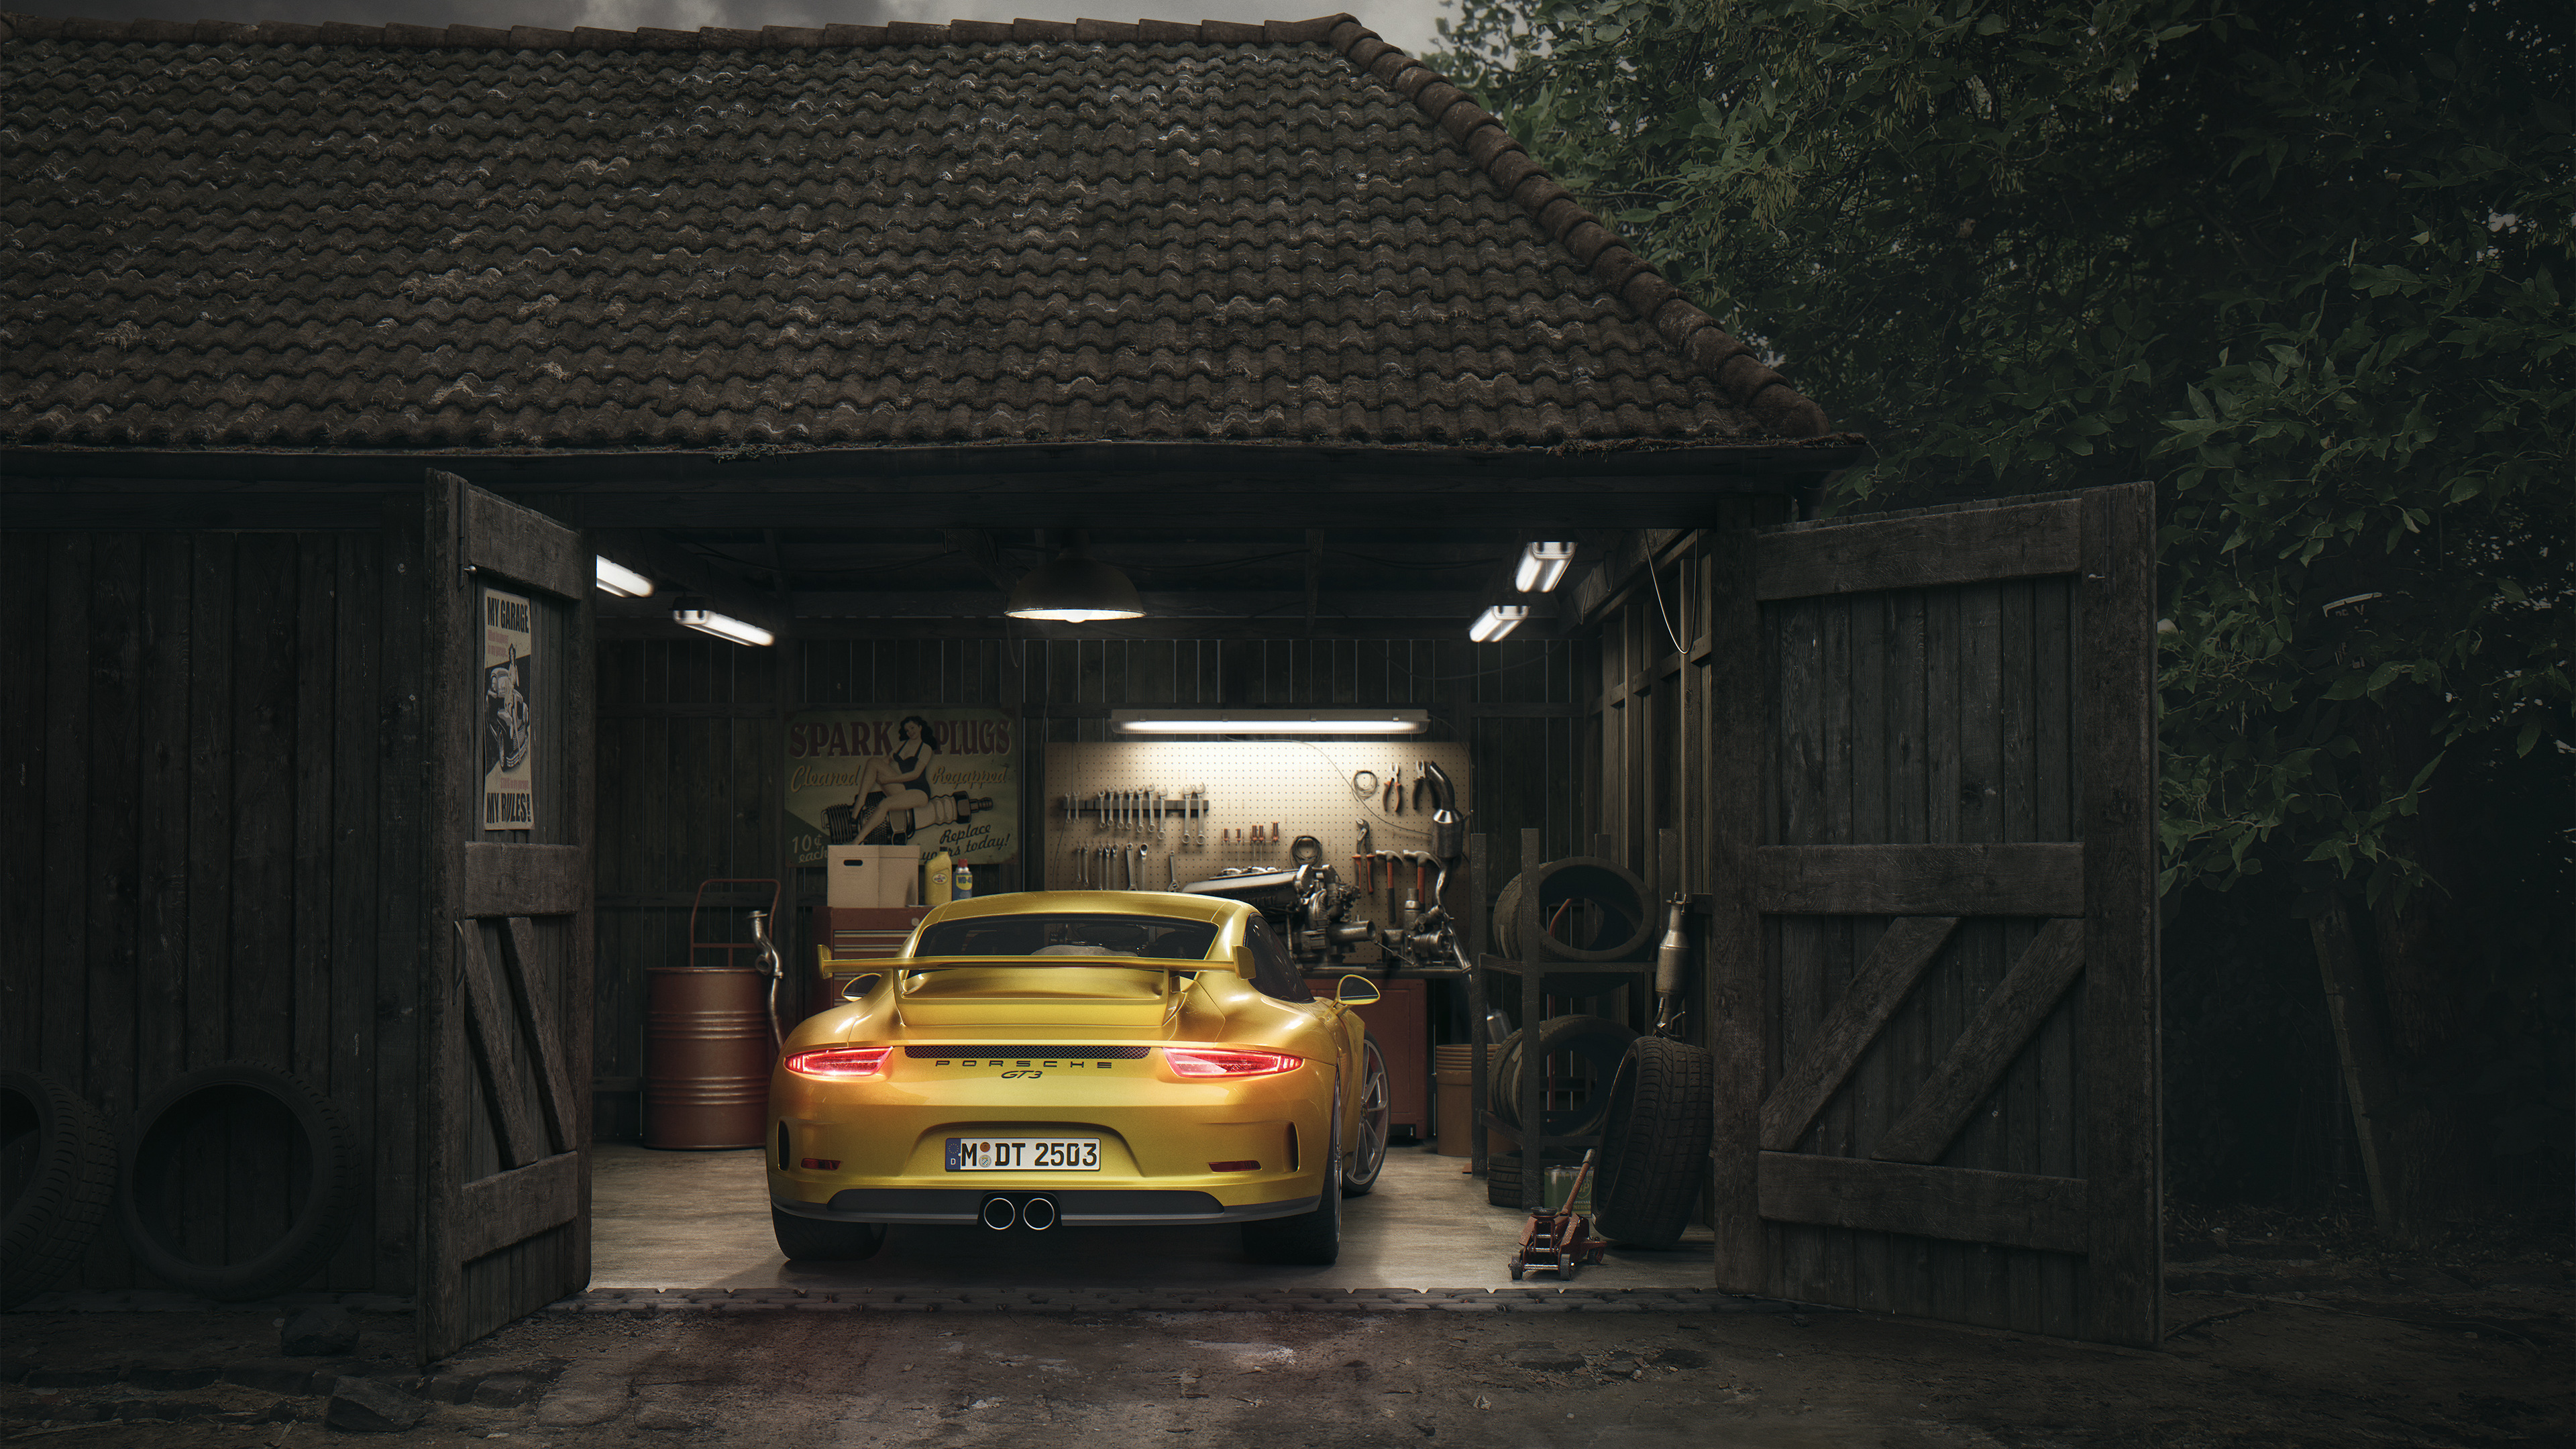 porsche gt3 barn 1539792781 - Porsche Gt3 Barn - porsche wallpapers, porsche gt3 wallpapers, hd-wallpapers, cars wallpapers, behance wallpapers, 4k-wallpapers